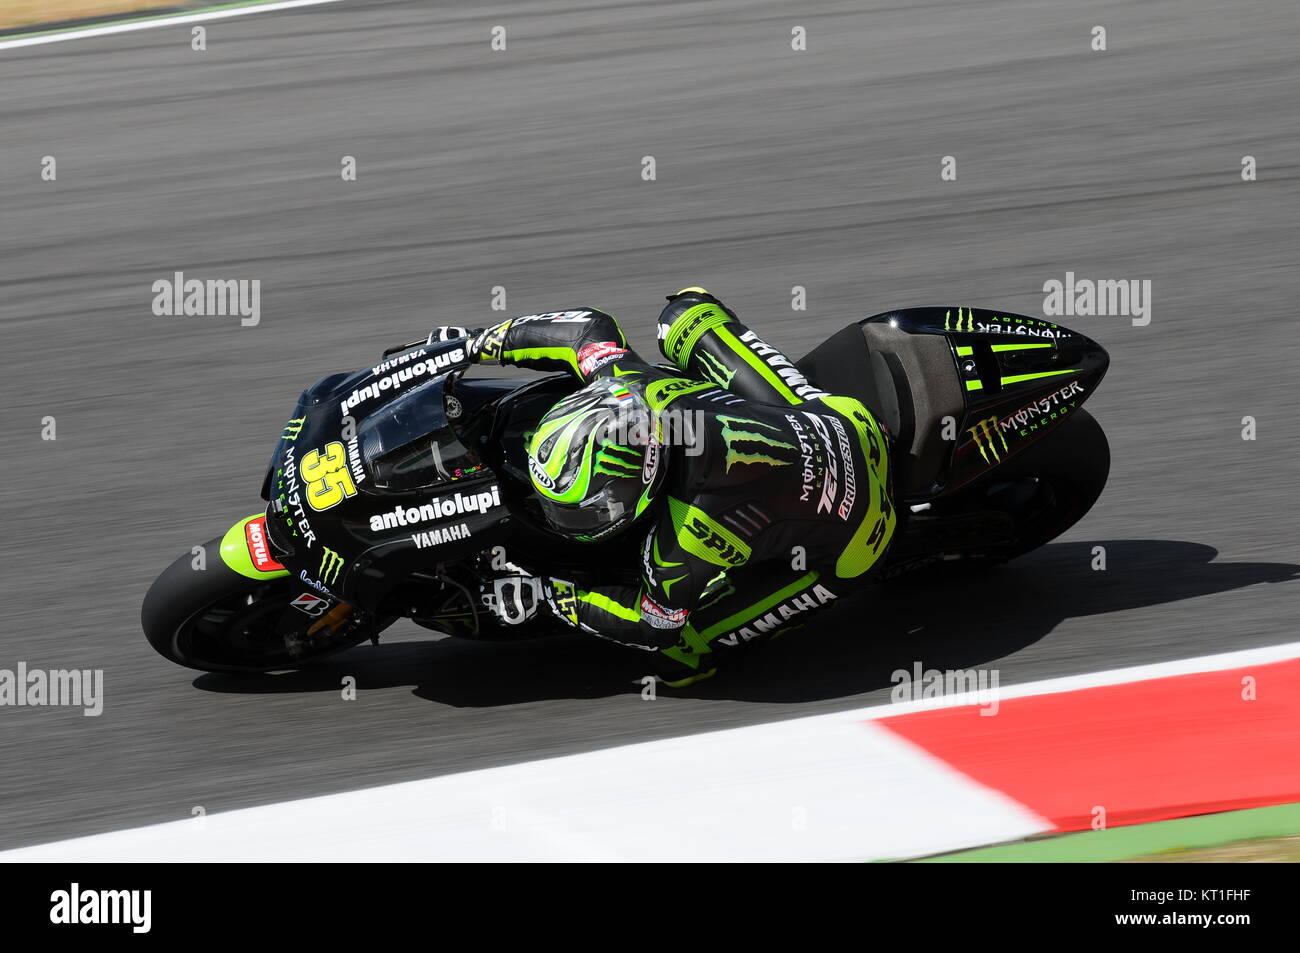 MUGELLO - ITALY, JULY 13, 2012: British Yamaha rider Cal Crutchlow during Qualify Session Grand Prix TIM of Italy - Stock Image